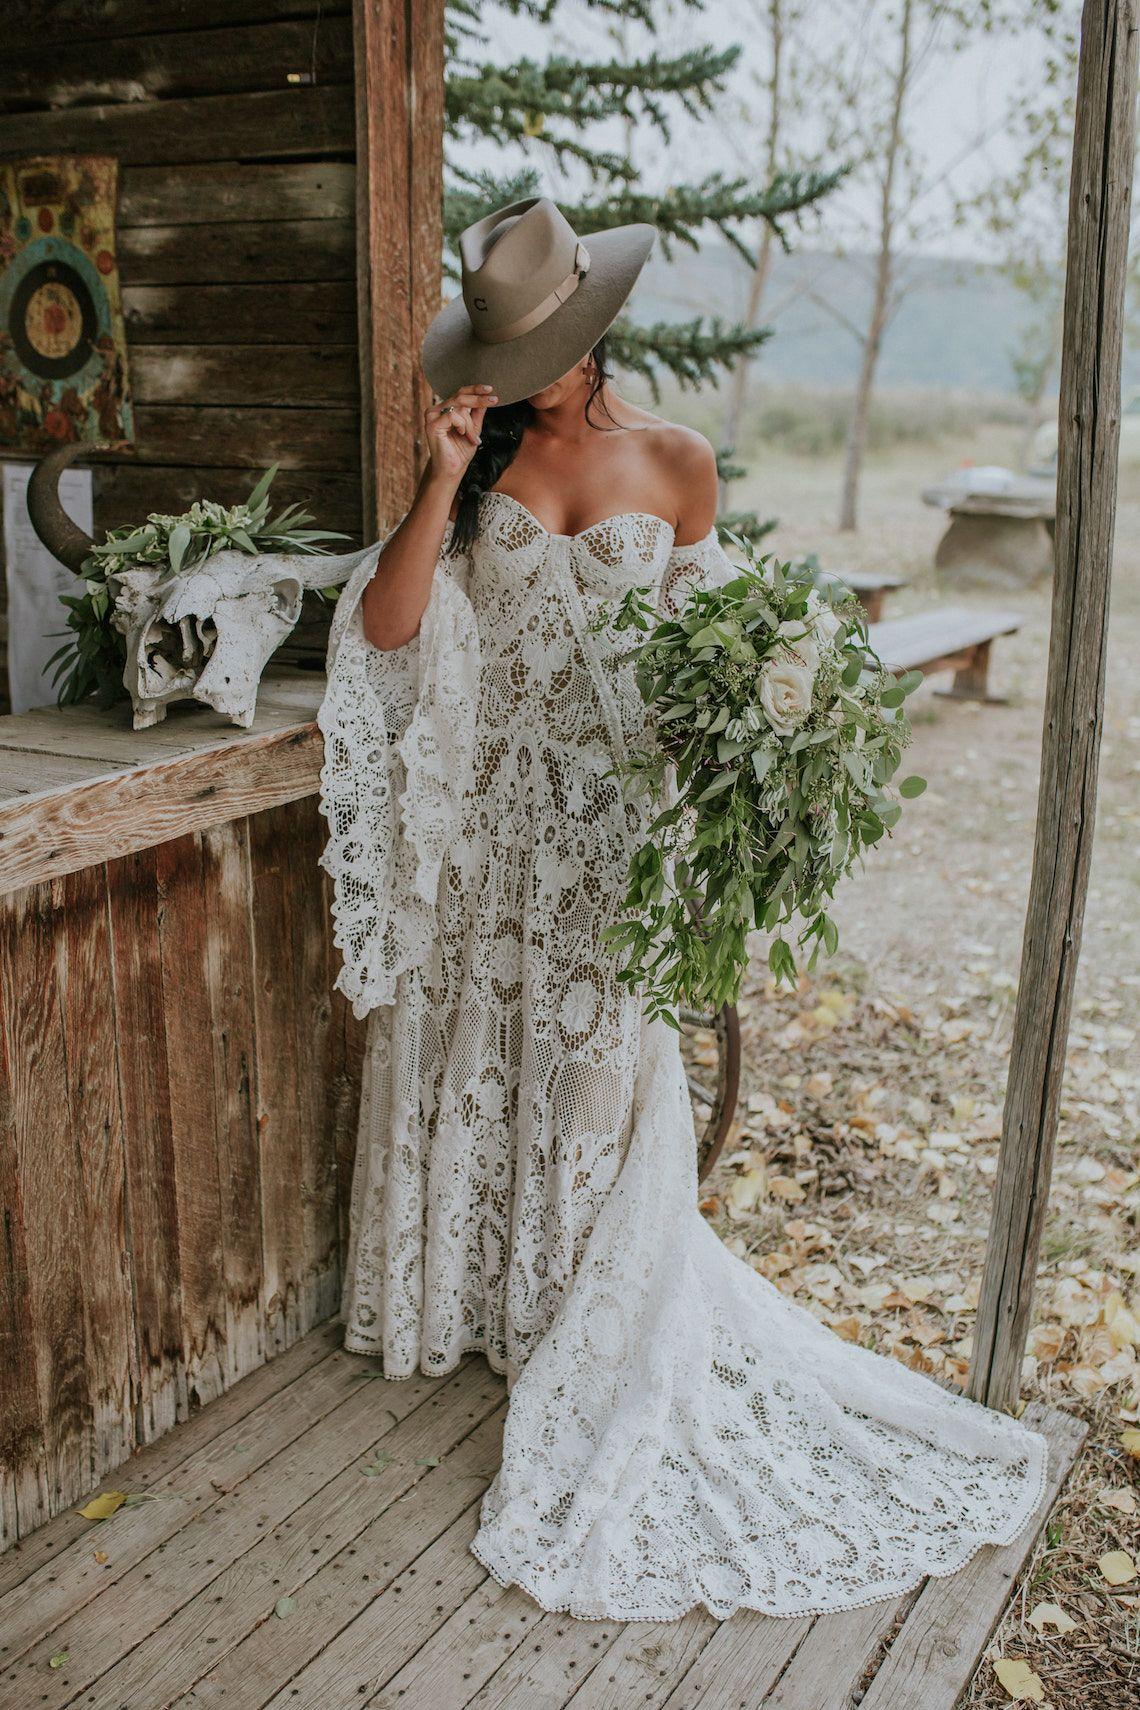 This Canadian country wedding with a Western saloon & buffalo skulls is epic